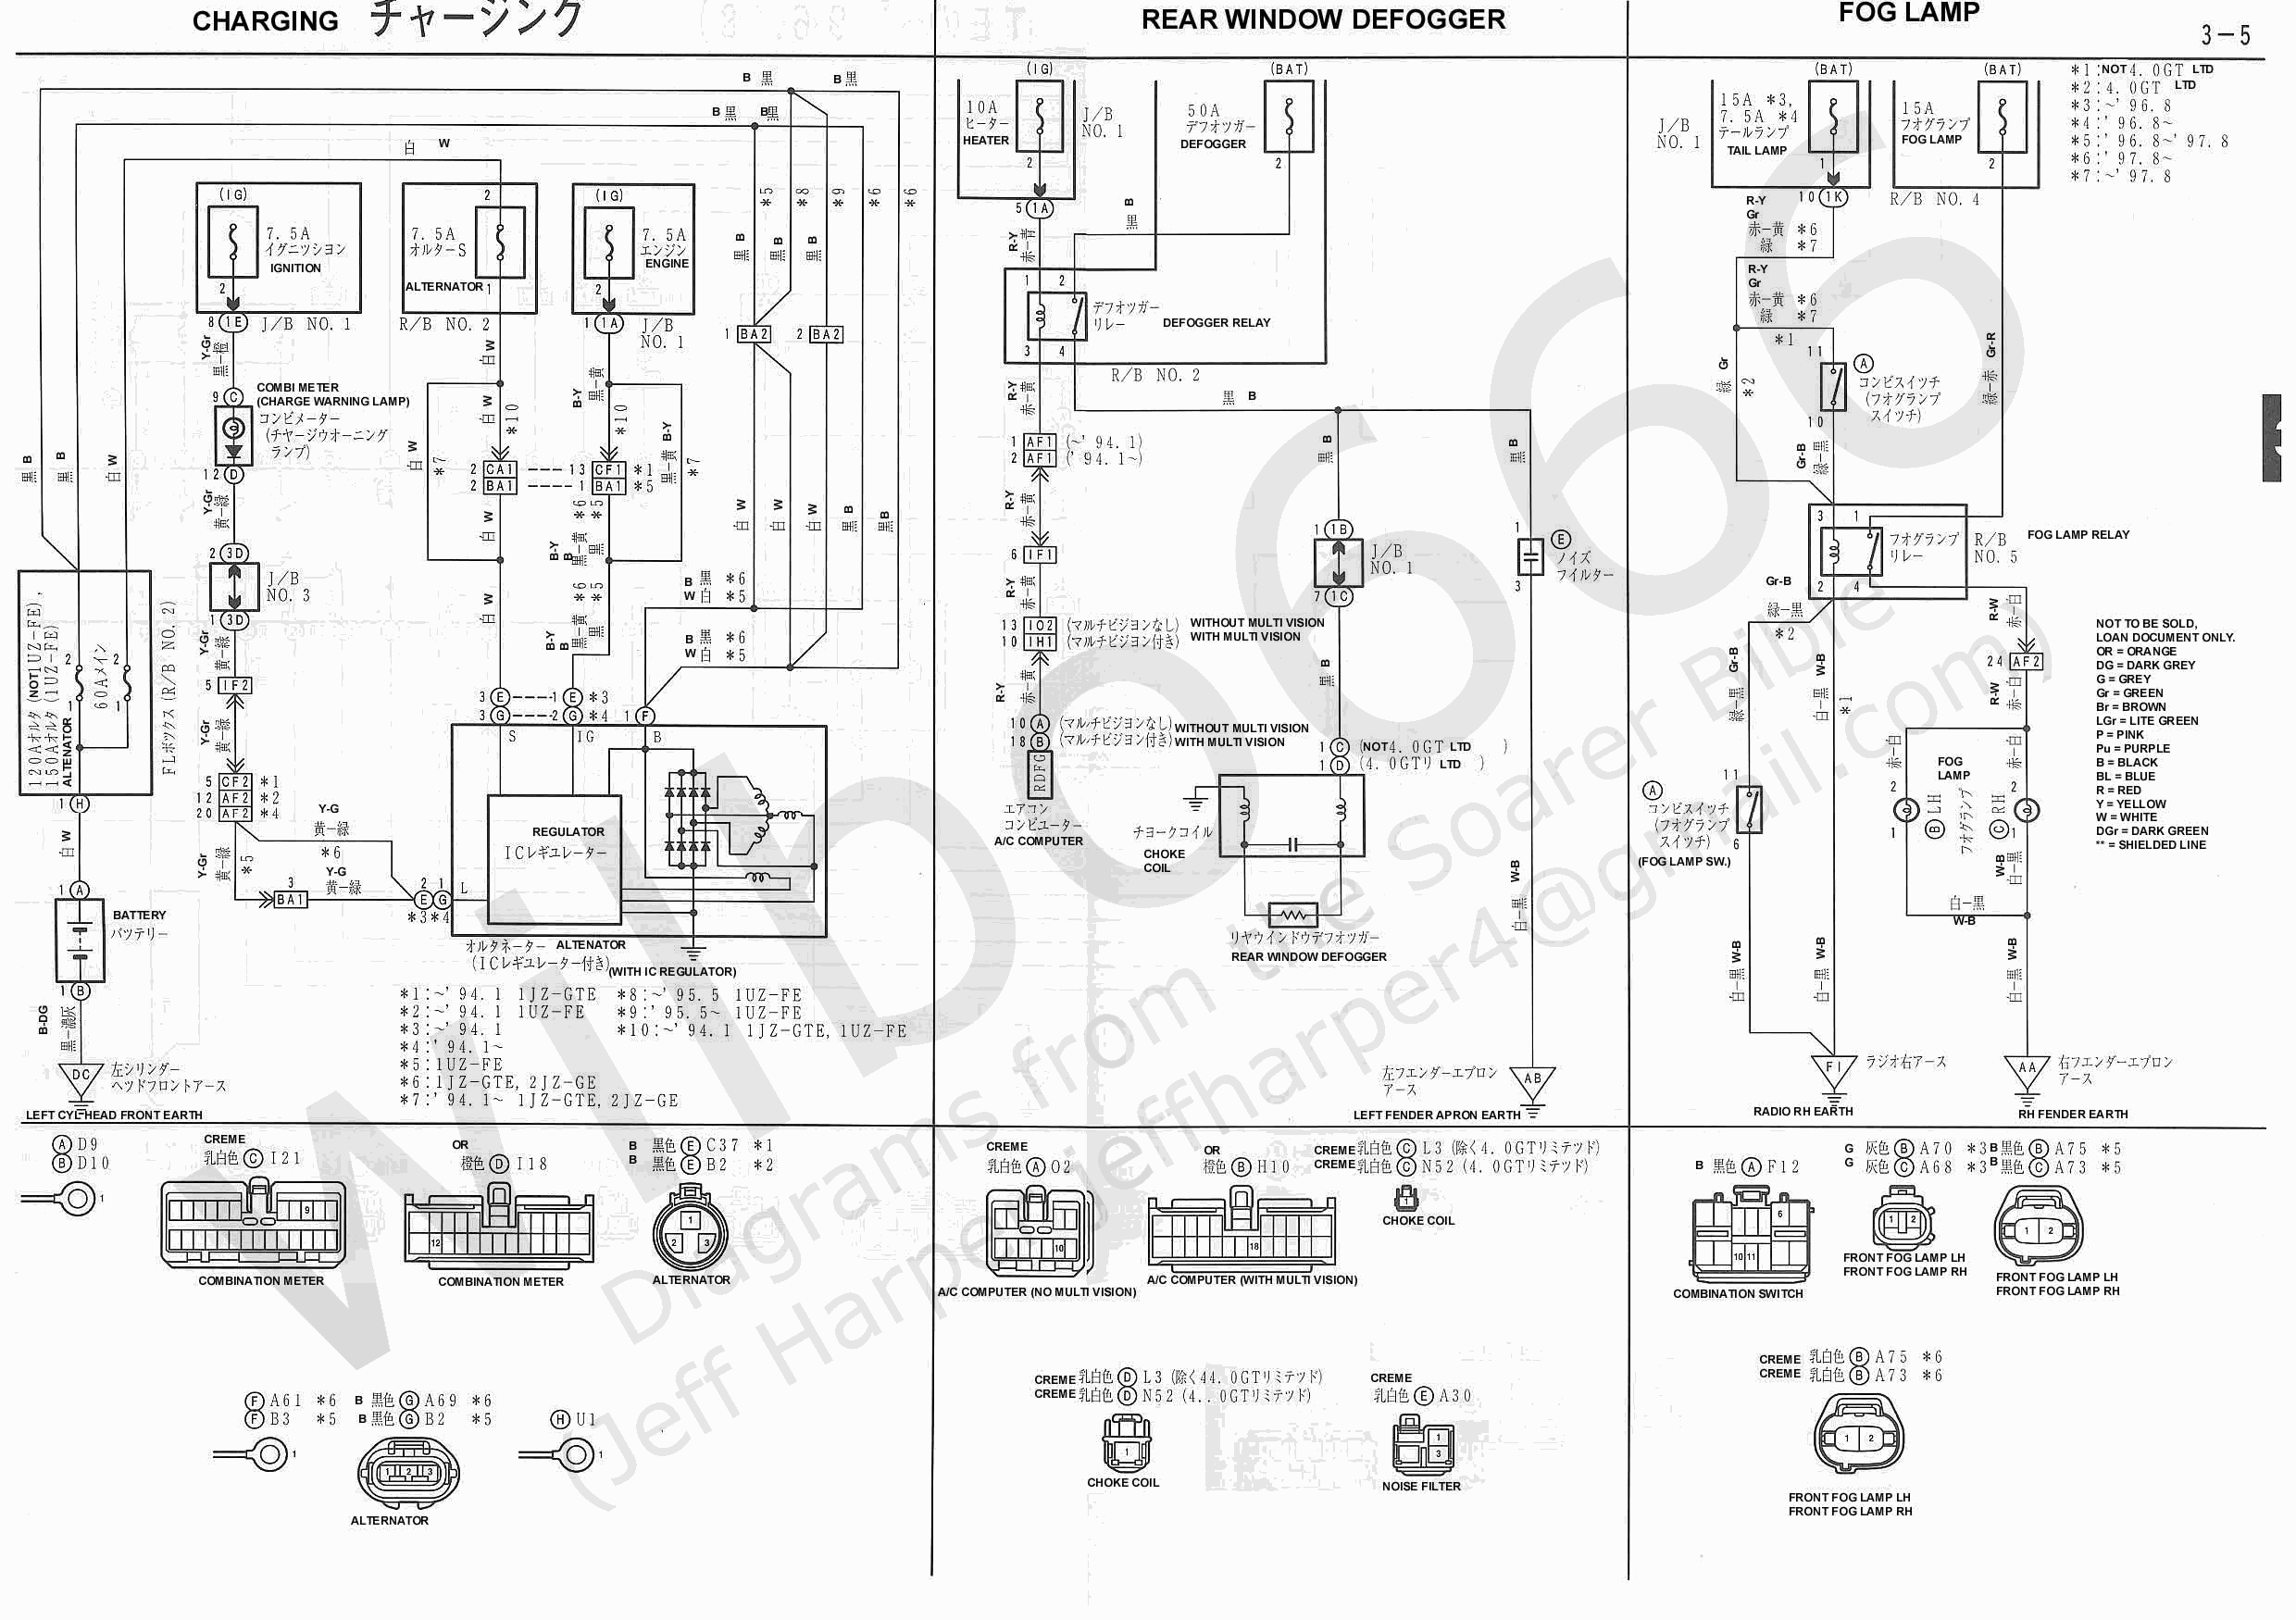 xZZ3x Electrical Wiring Diagram 6737105 3 5?resize\\\\\\\\\\\=665%2C469 towmate wiring diagram towmate light bar \u2022 wiring diagrams te 610 wiring diagram at crackthecode.co